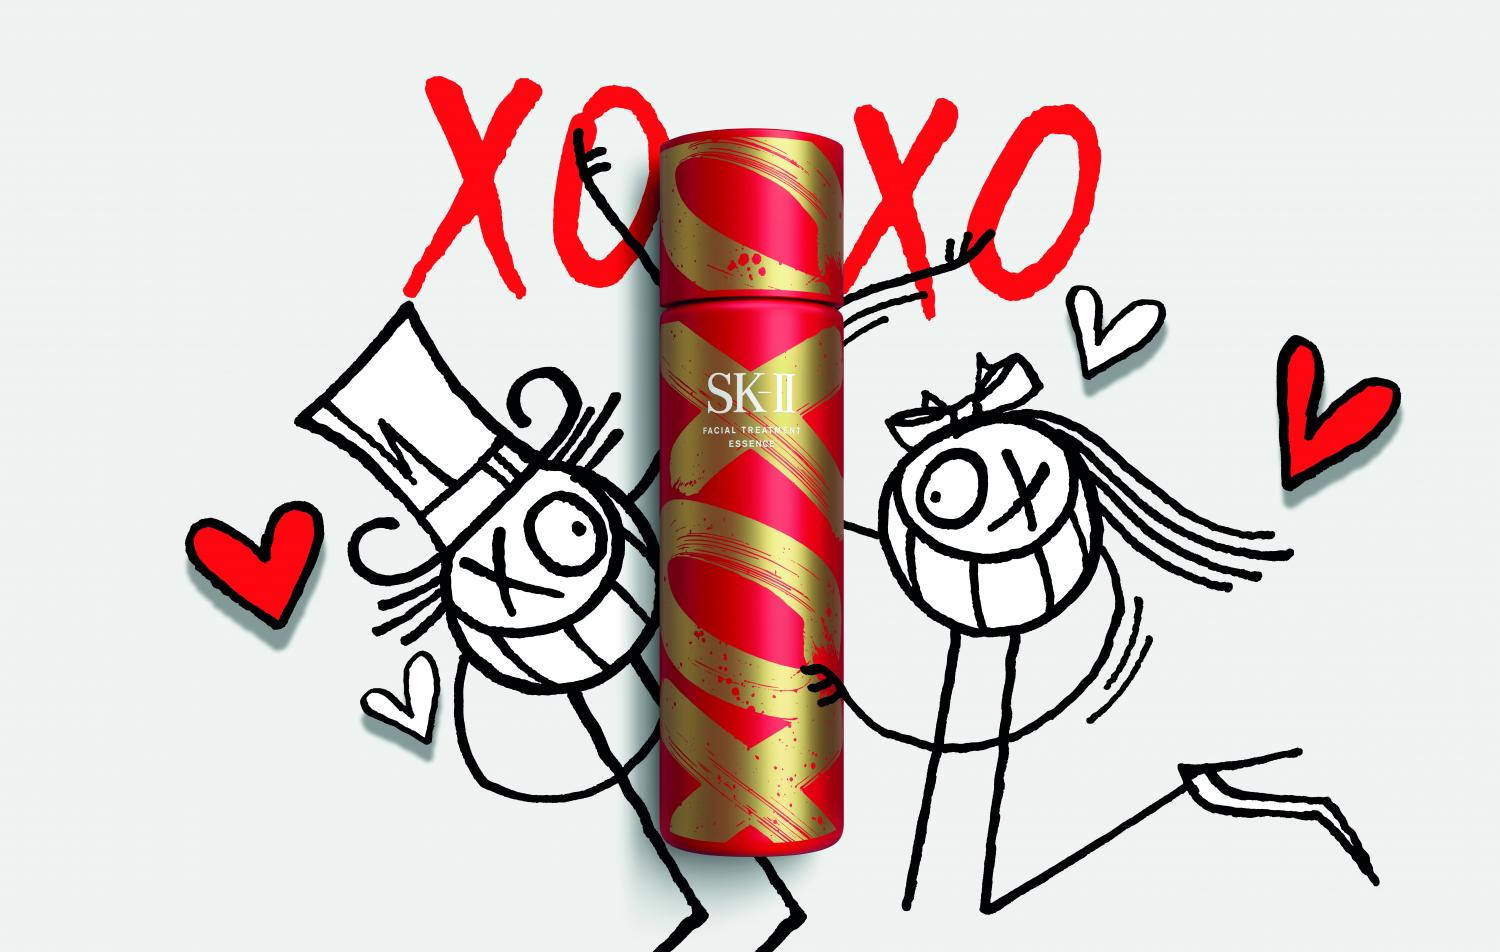 SK-II's big XO for Year of the Ox